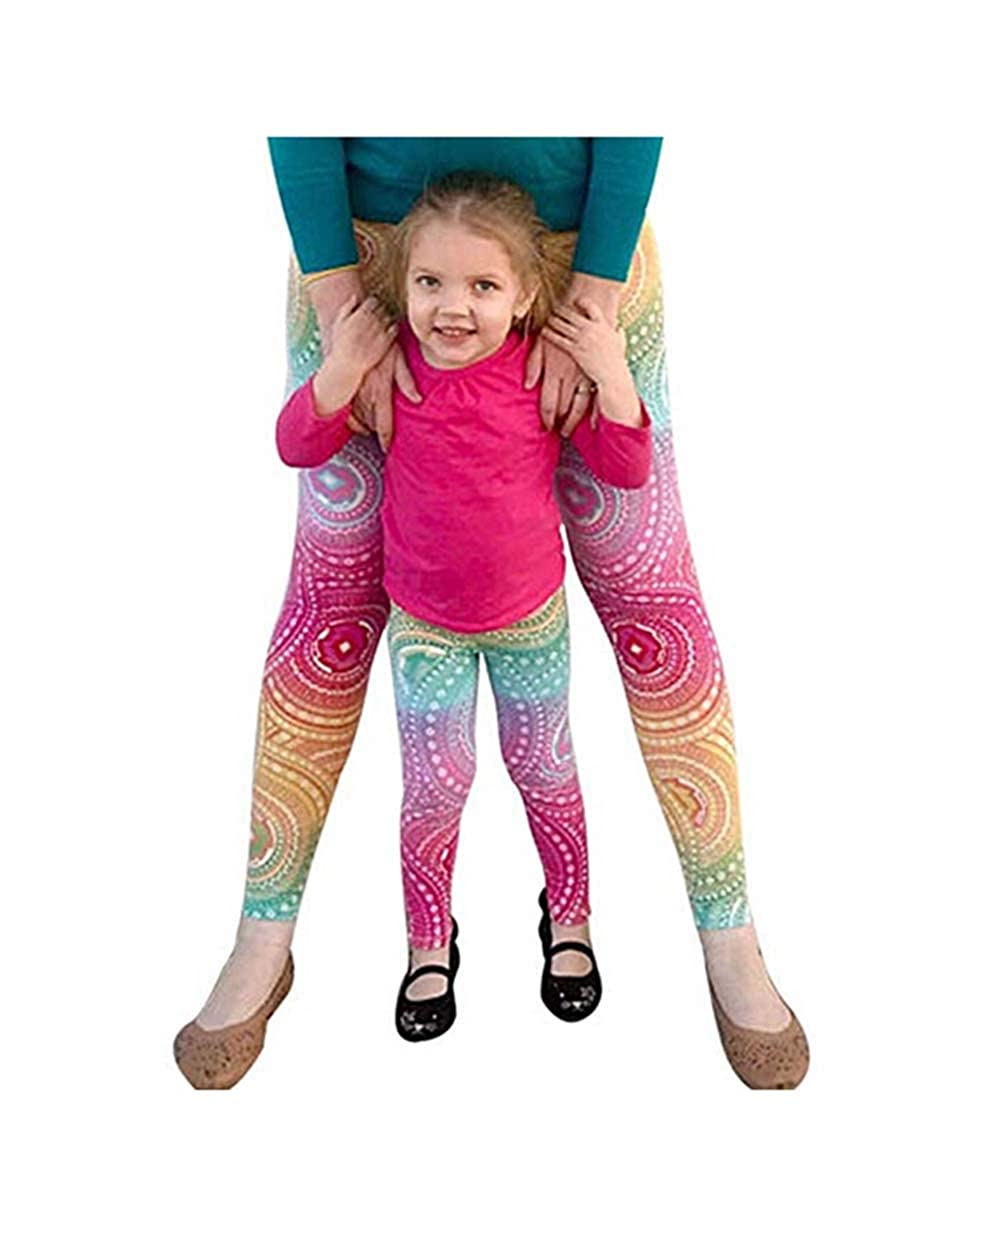 YT Baby Mommy and Me Matching Yoga Leggings Family Matching Printing High Waist Gym Fitness Workout Pants